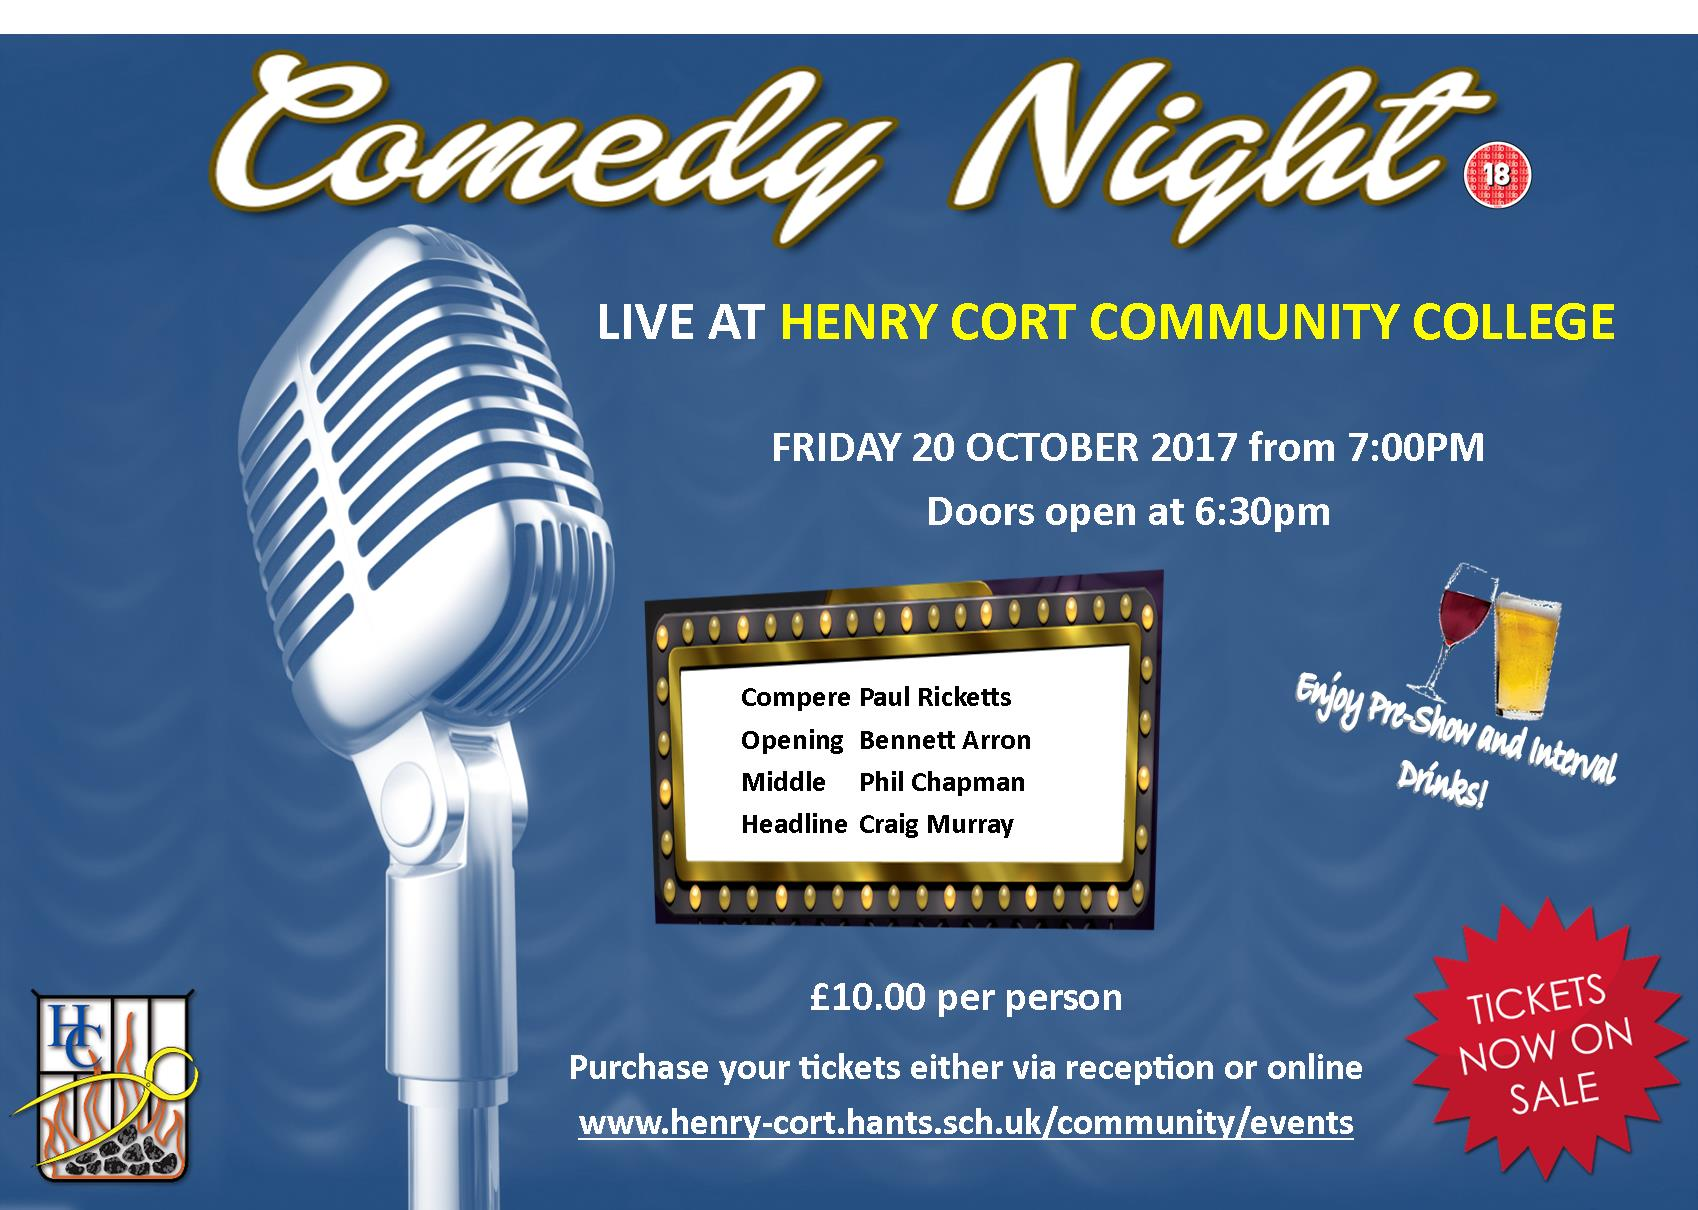 Comedy Night live at the Henry Cort Community College